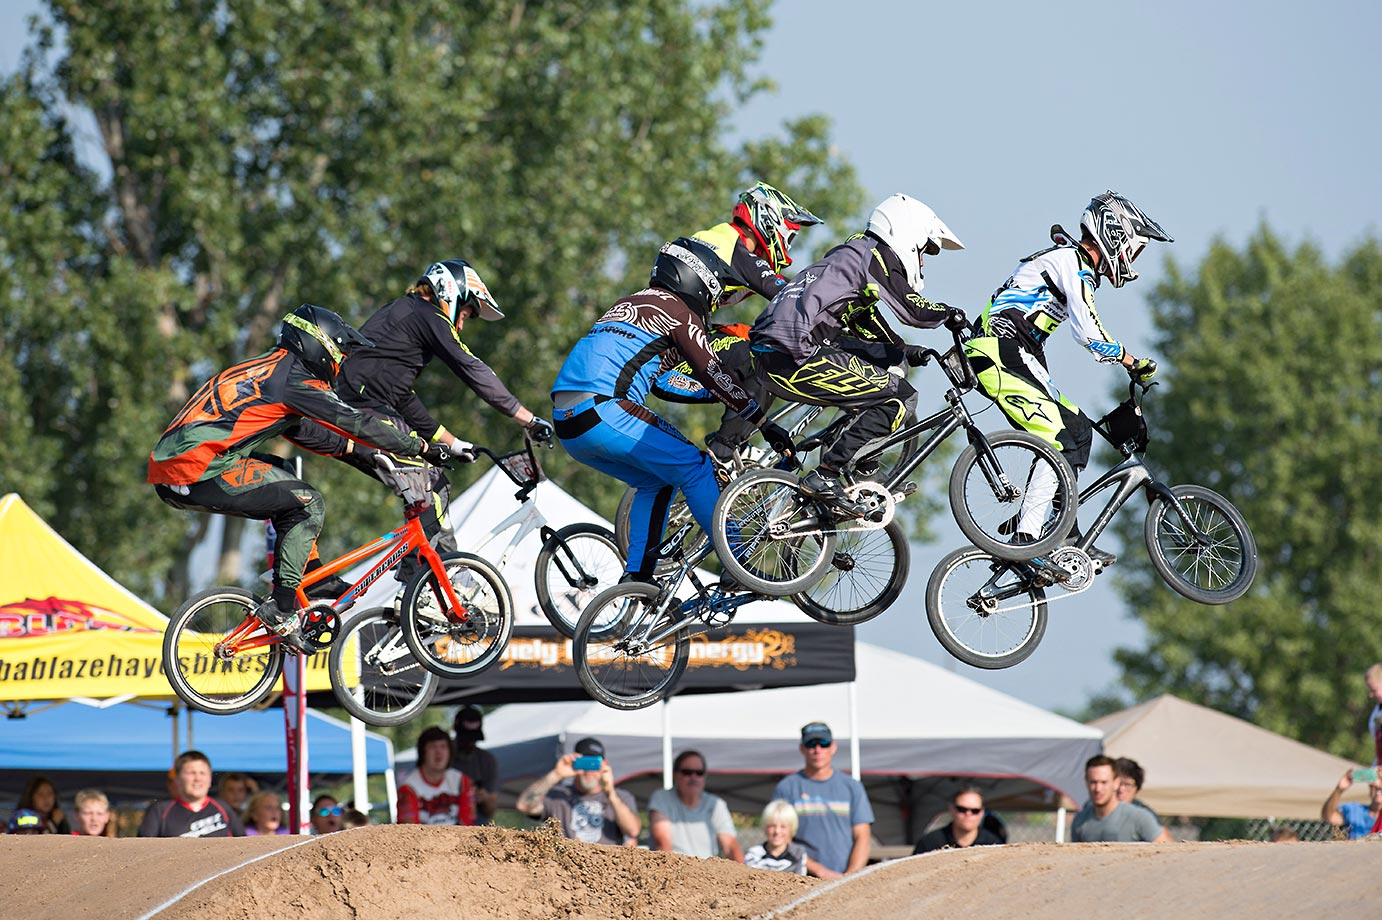 Riders attack the first jump during USA BMX's Mile High Nationals at the Grand Valley BMX in Grand Junction, Colo.